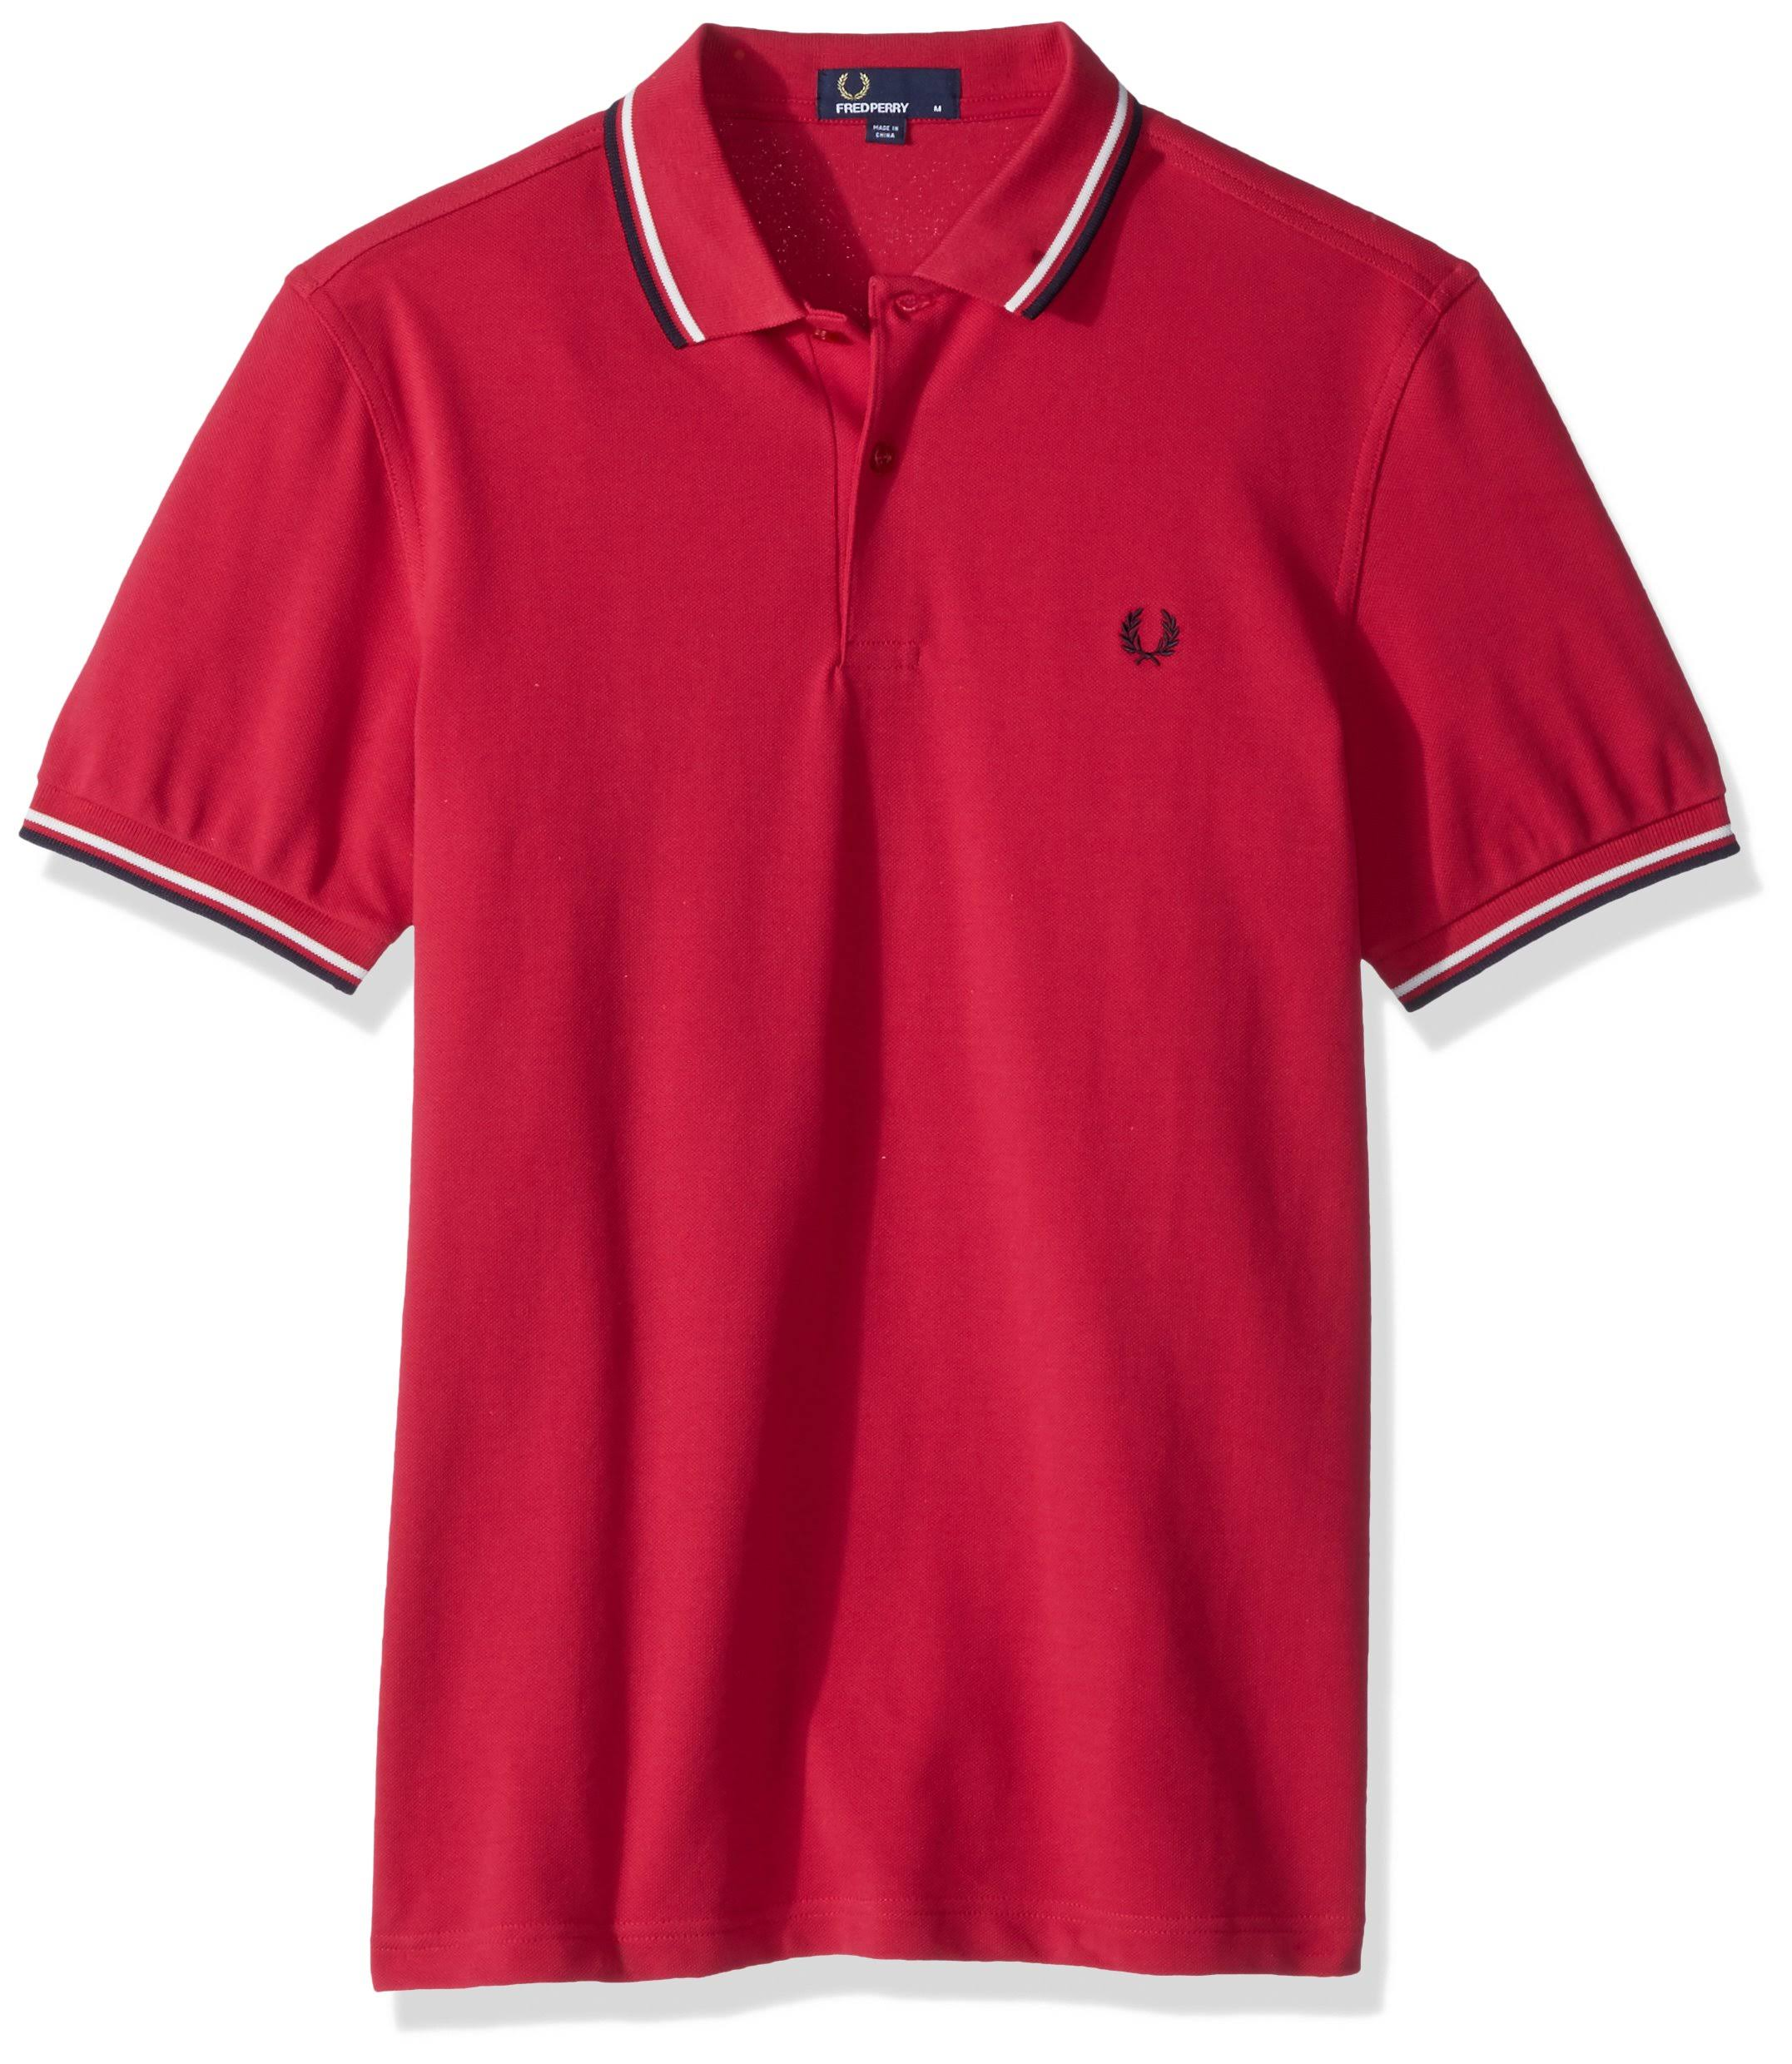 Pink Poliertes In Fred Perry Spitzen shirt Mit T Zwei pPxSPqwC